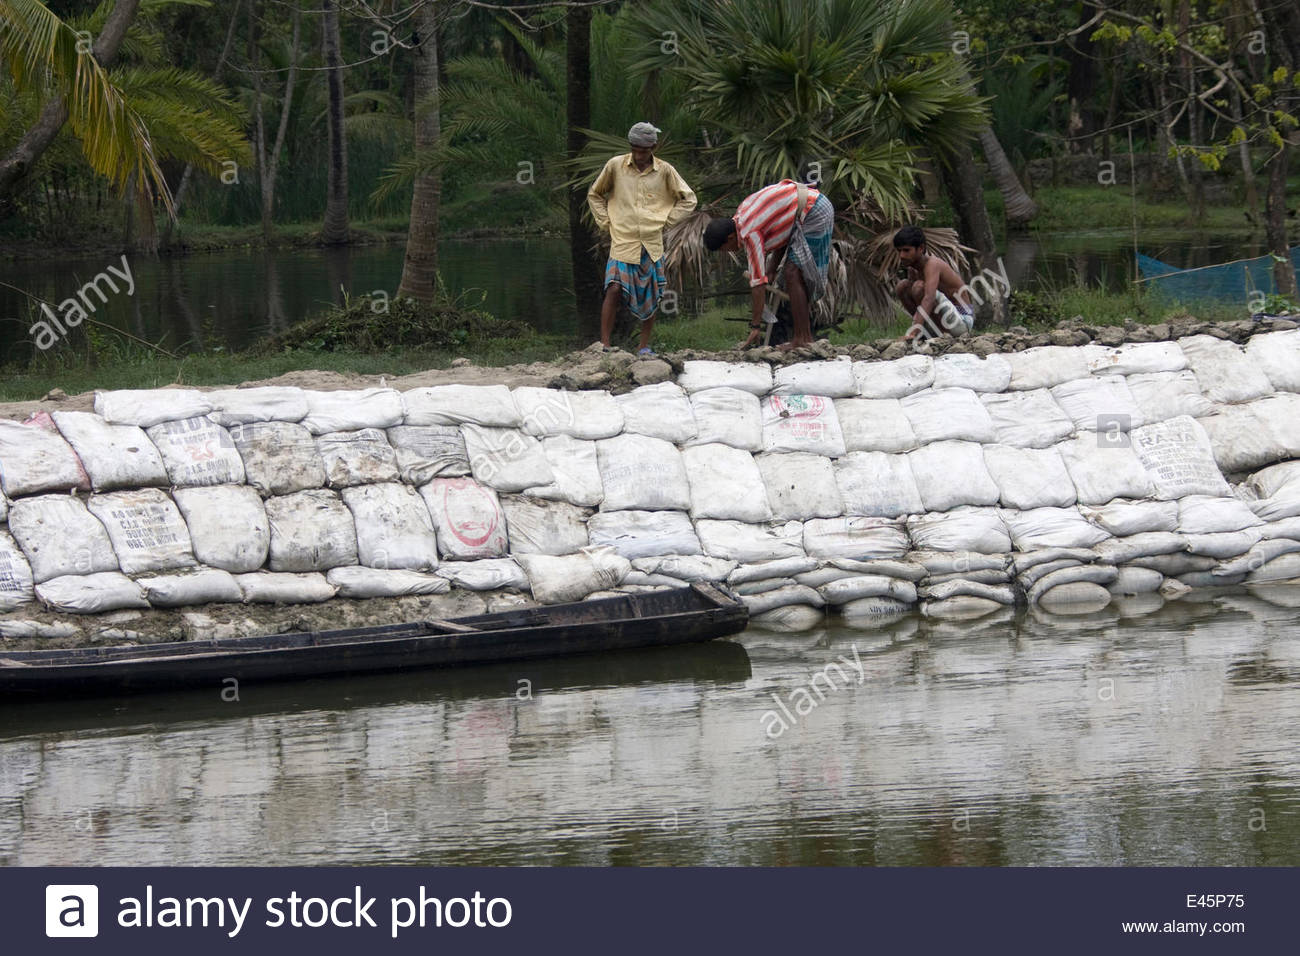 This sea wall is being constructed to protect a fishing village from flooding in Sundarbans, Bangladesh. Photo: Alamy